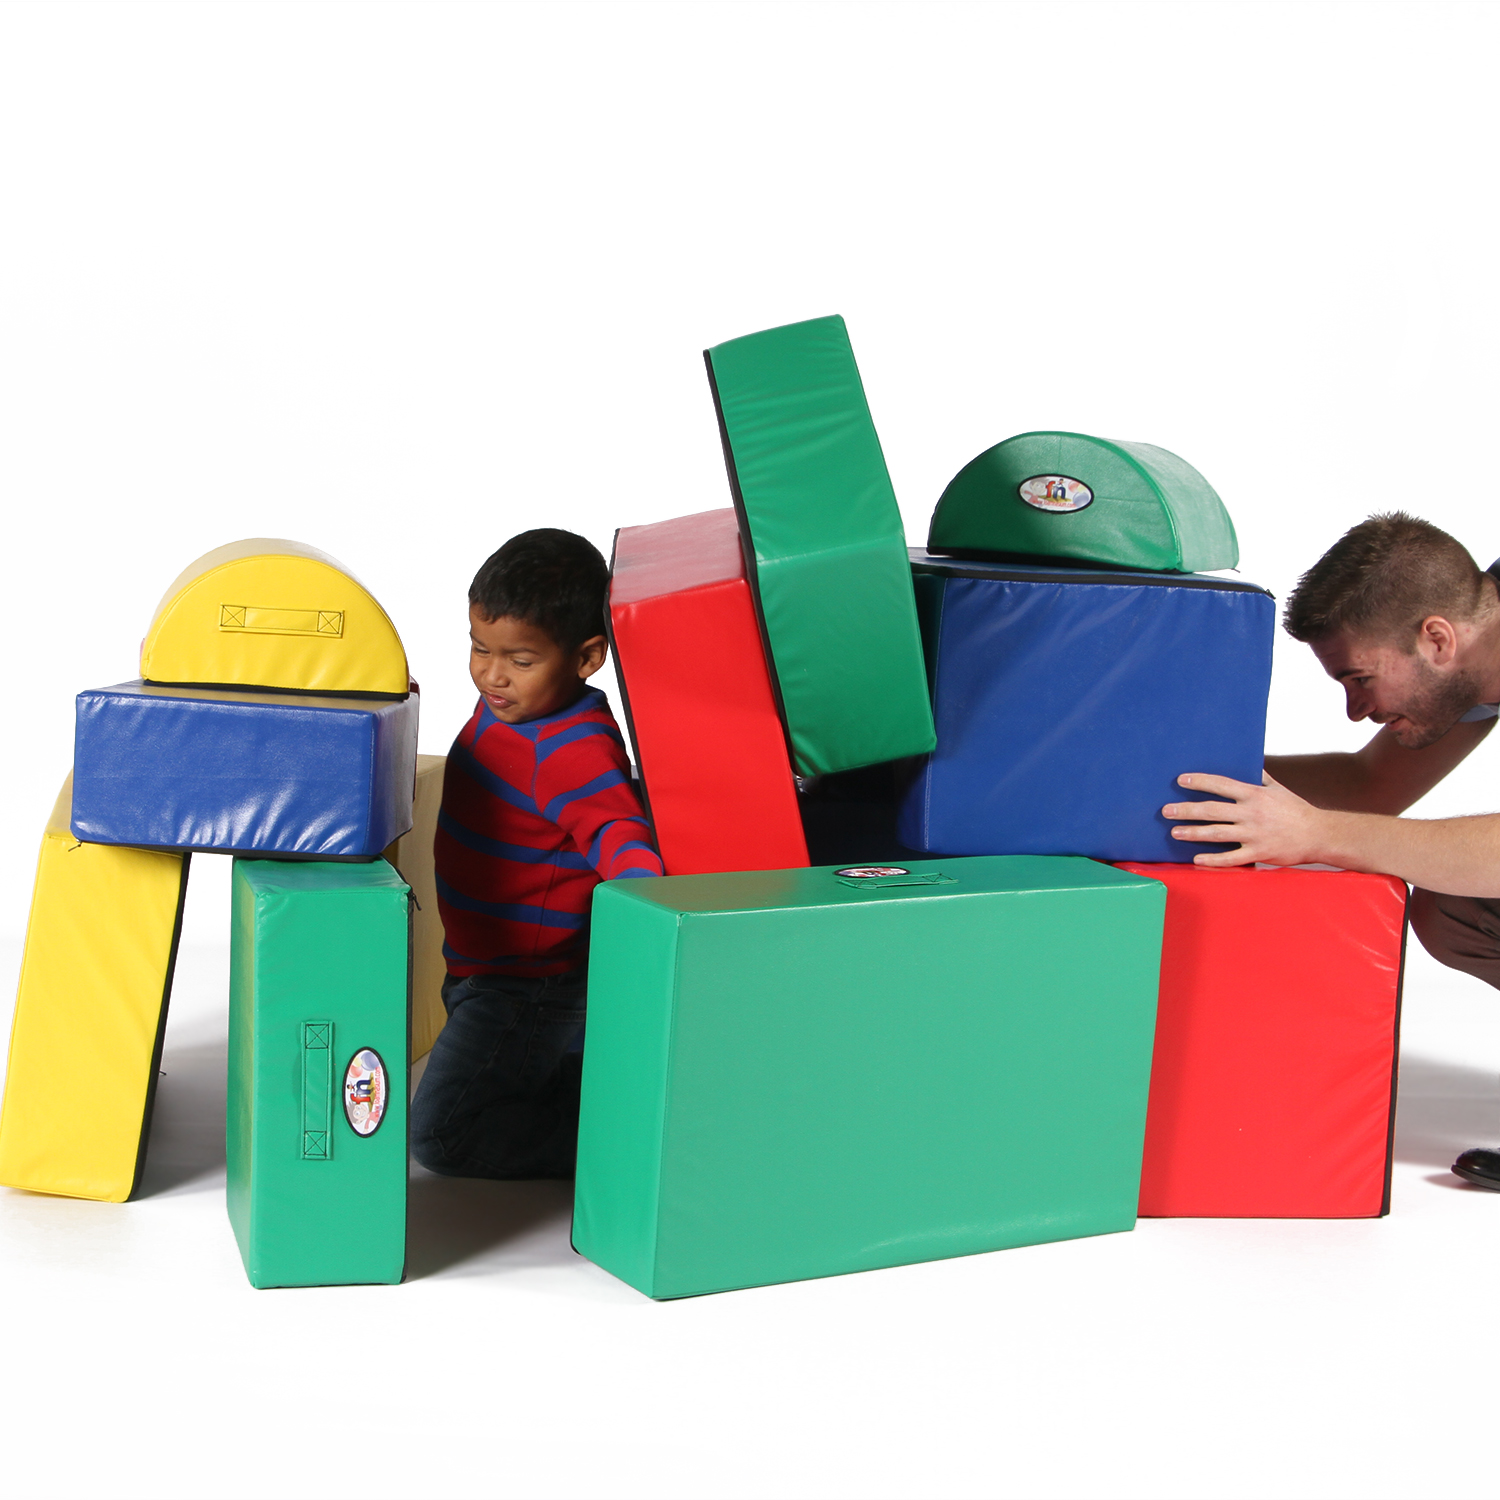 Father playing with son on Foamnasium foam play set.